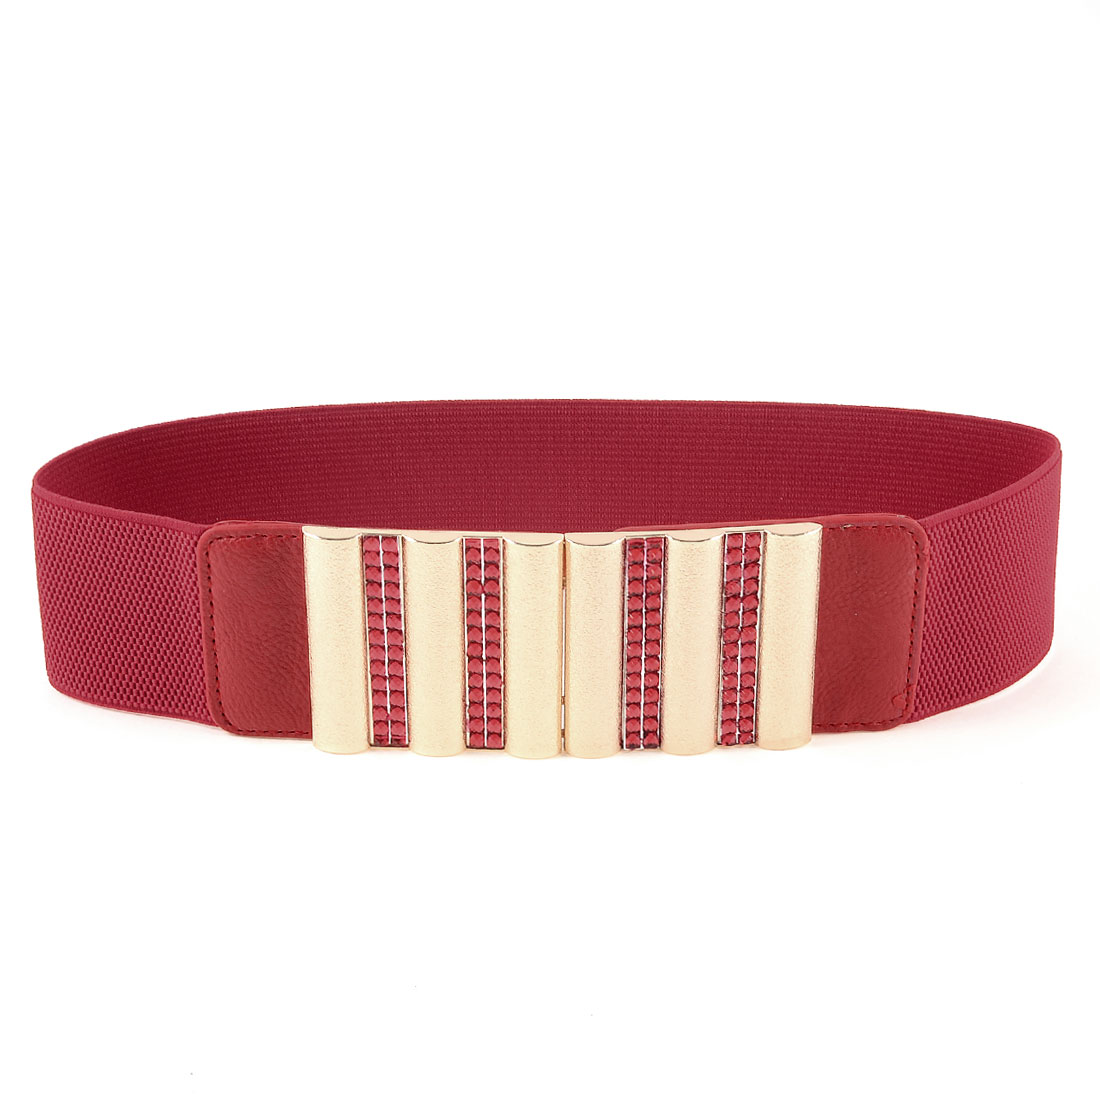 Ladies Interlocking Closure Faux Crystals Detail Stretchy Waist Belt Red Gold Tone